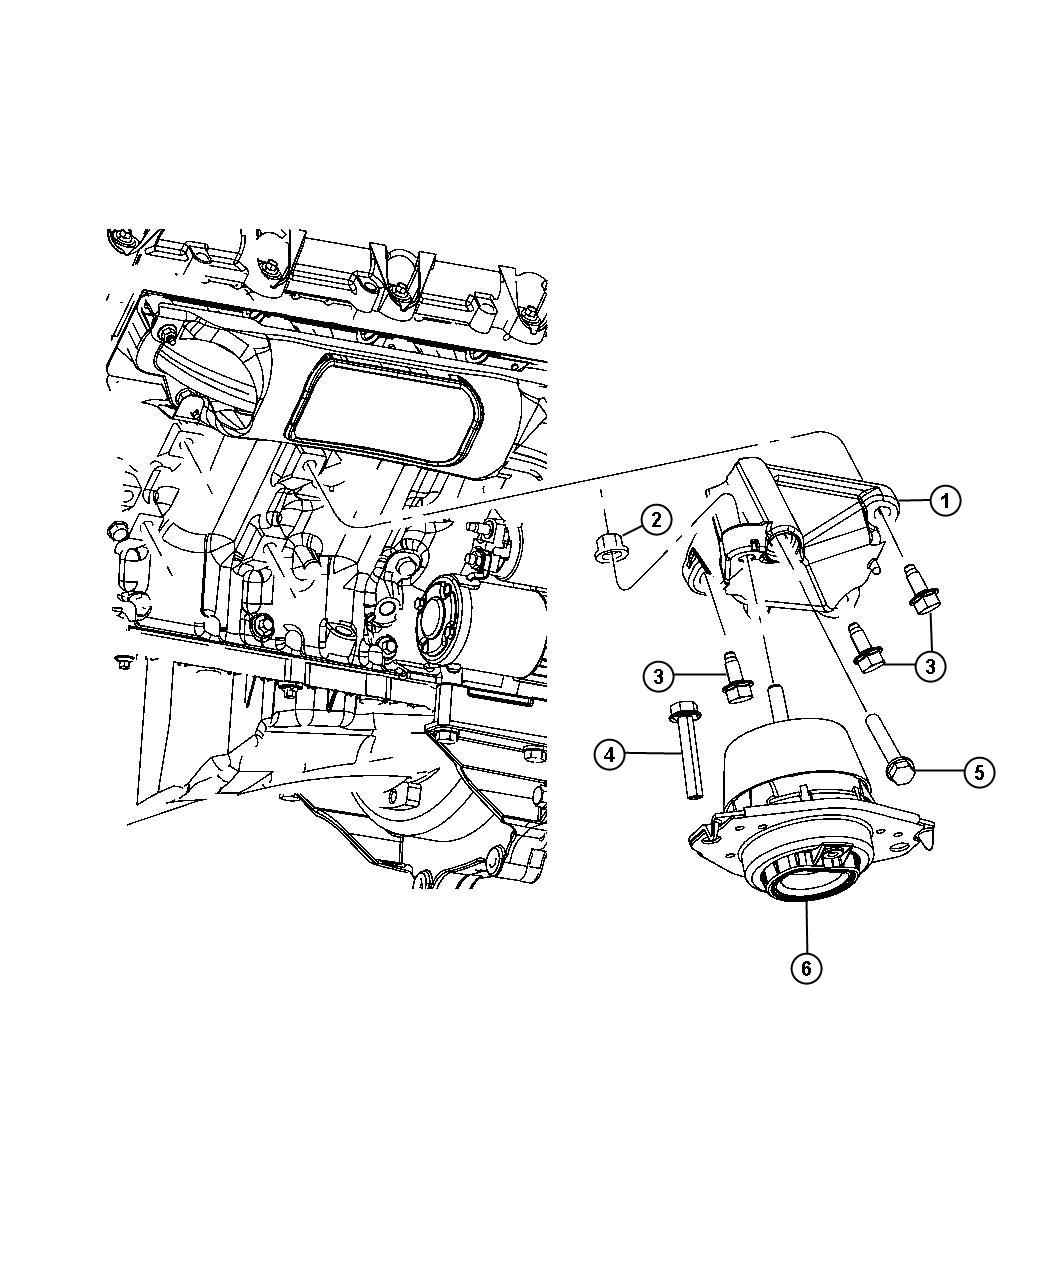 Chrysler Voyager Bolt Used For Bolt And Washer Hex Head